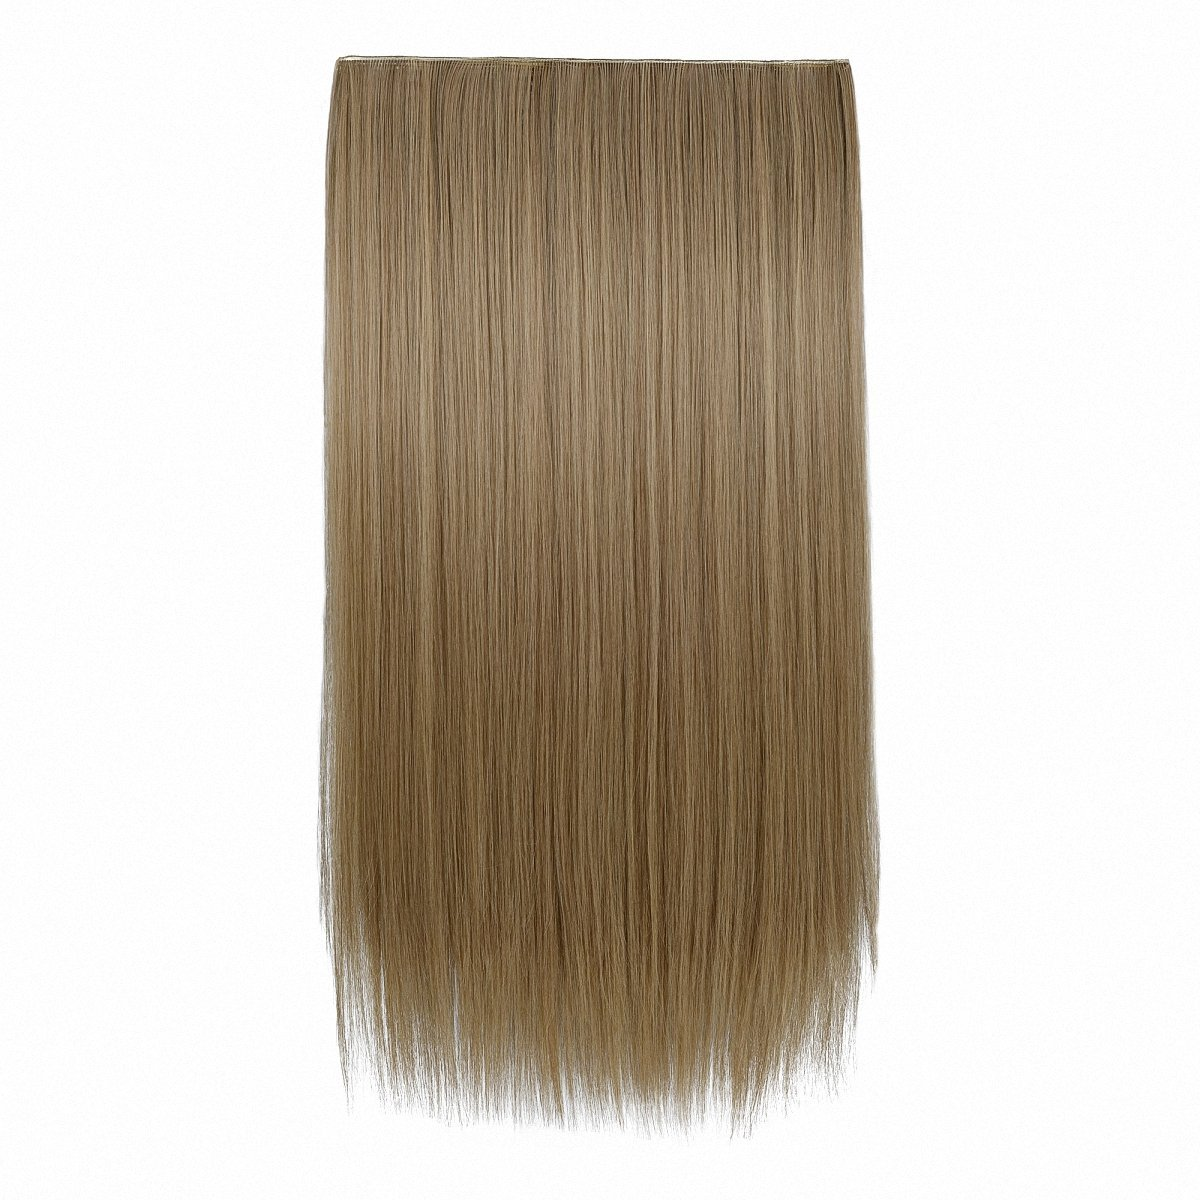 Feshfen 24 one piece 34 full head clip in hair extensions long feshfen 24 one piece 34 full head clip in hair extensions long straight pmusecretfo Images